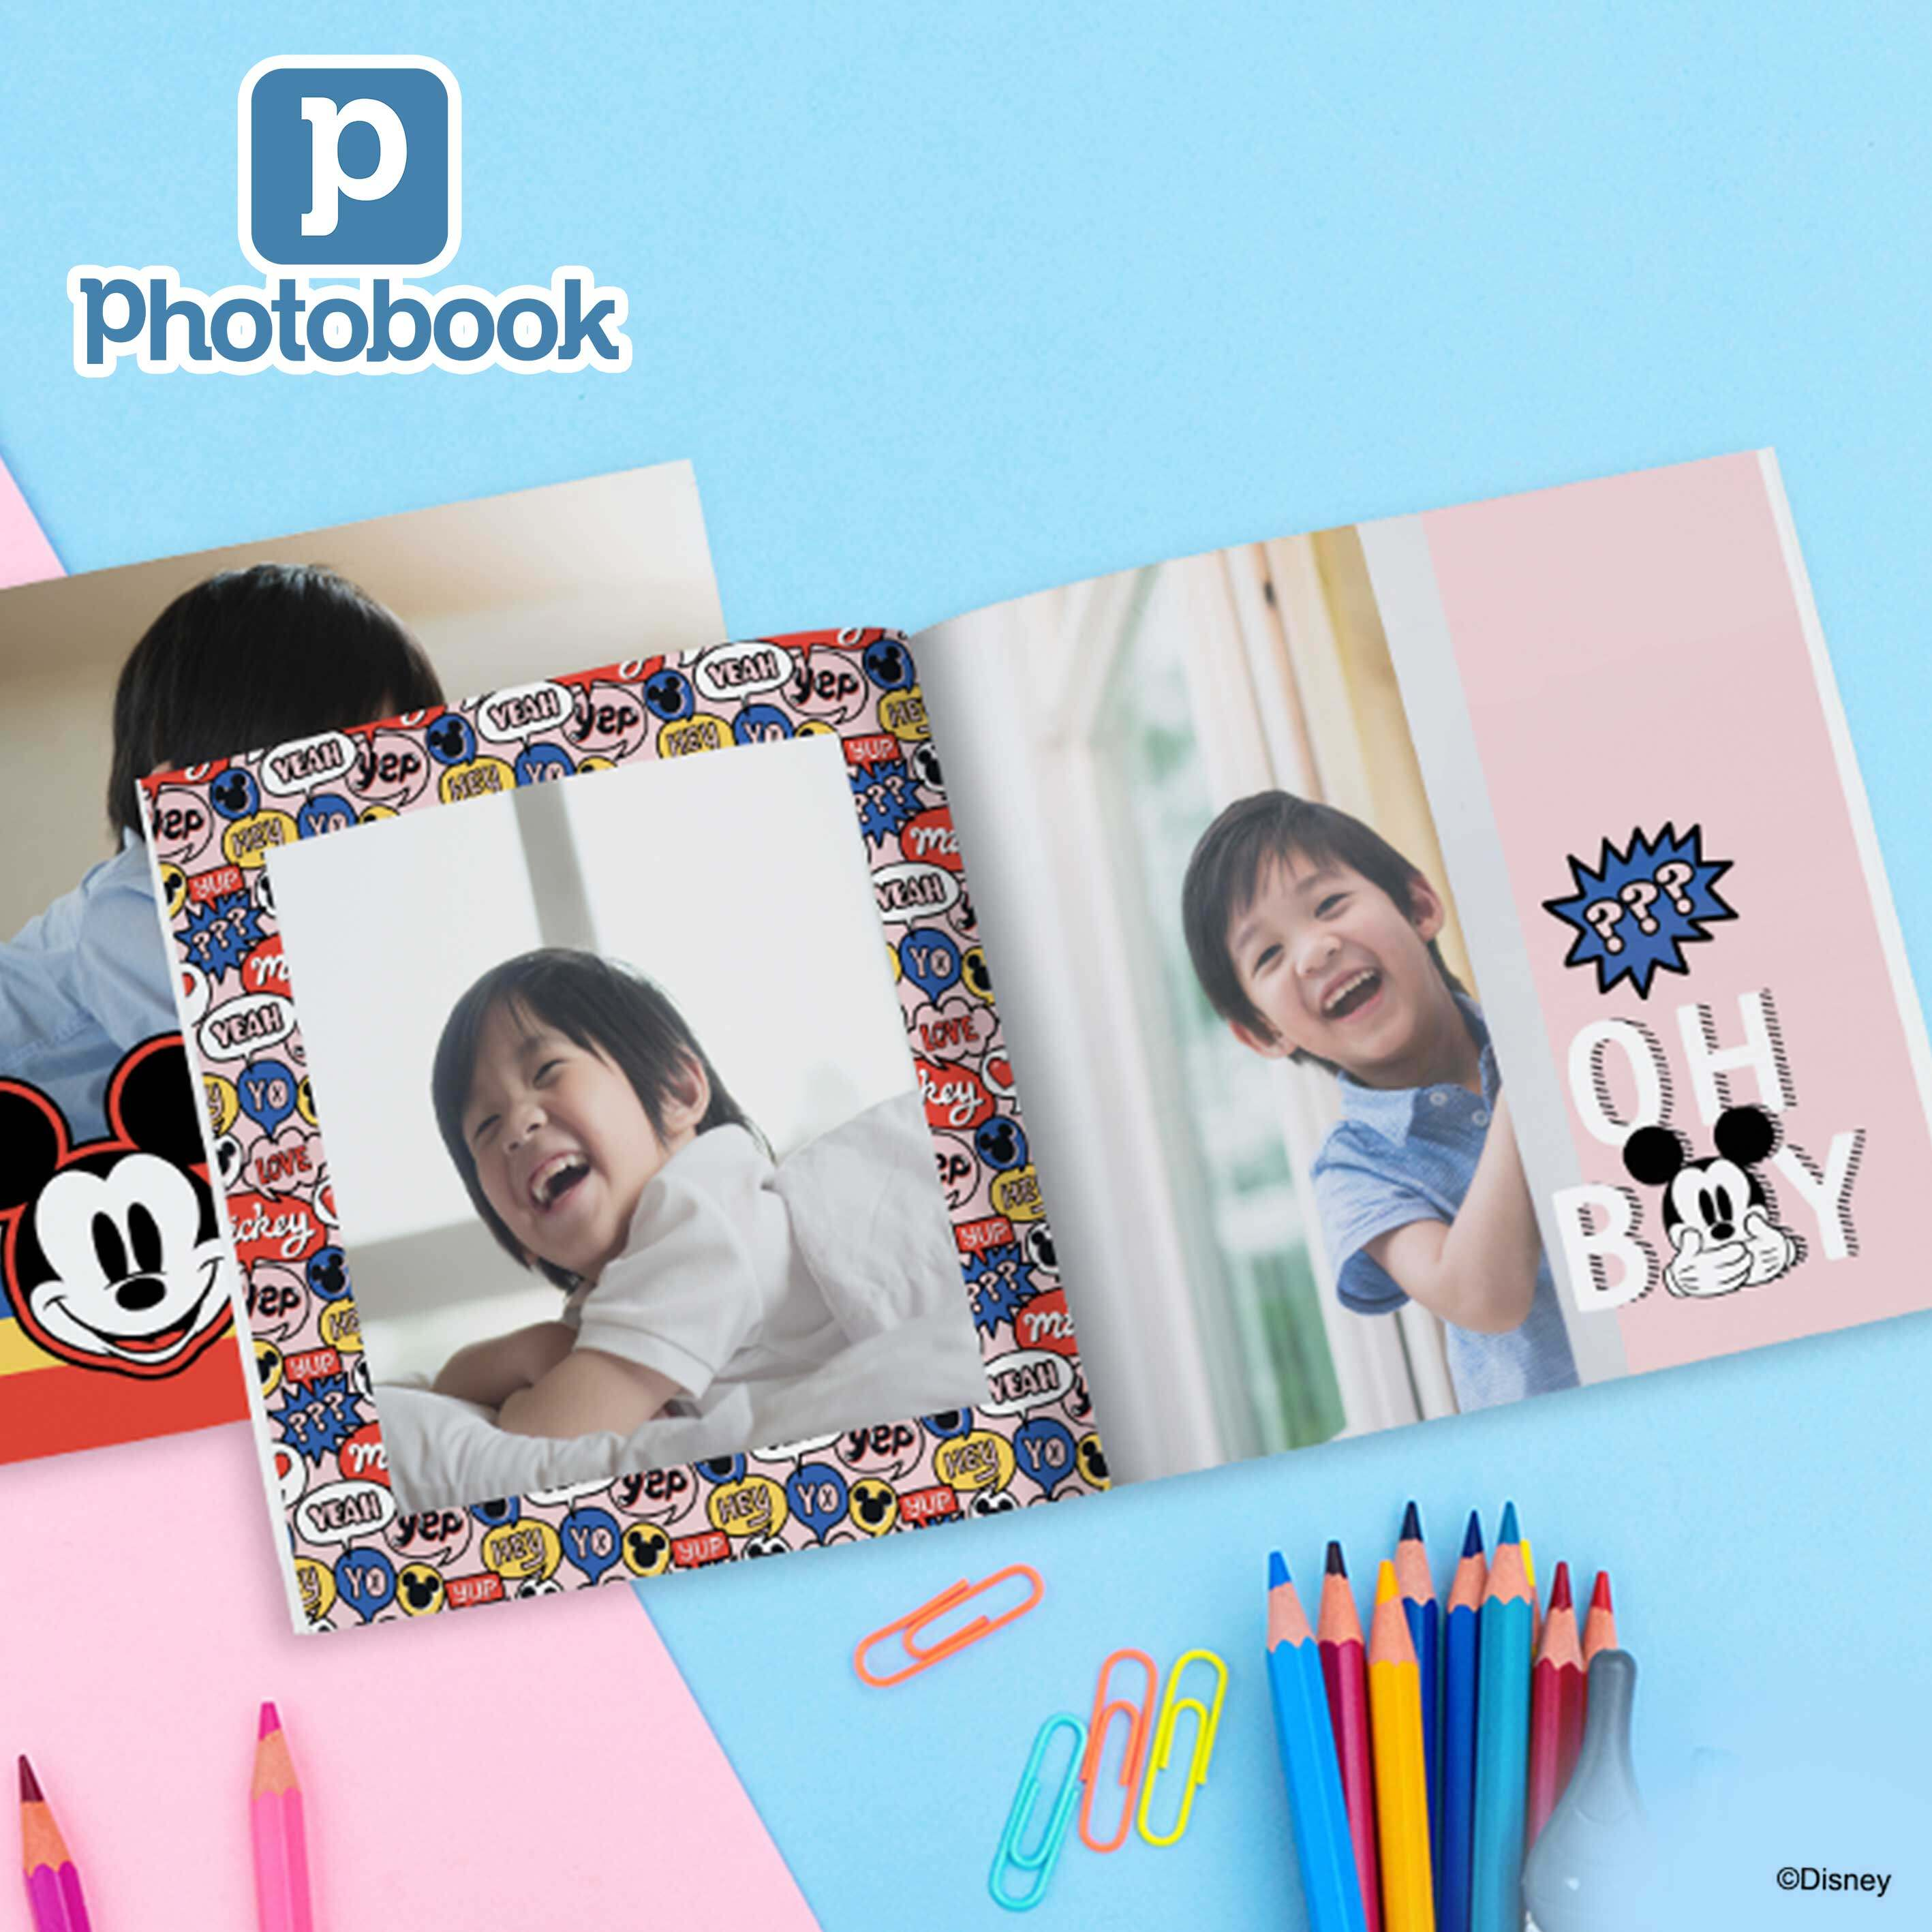 [e-Voucher] Photobook Malaysia 8 x 8 Small Square Softcover Photo Book, 40 Pages